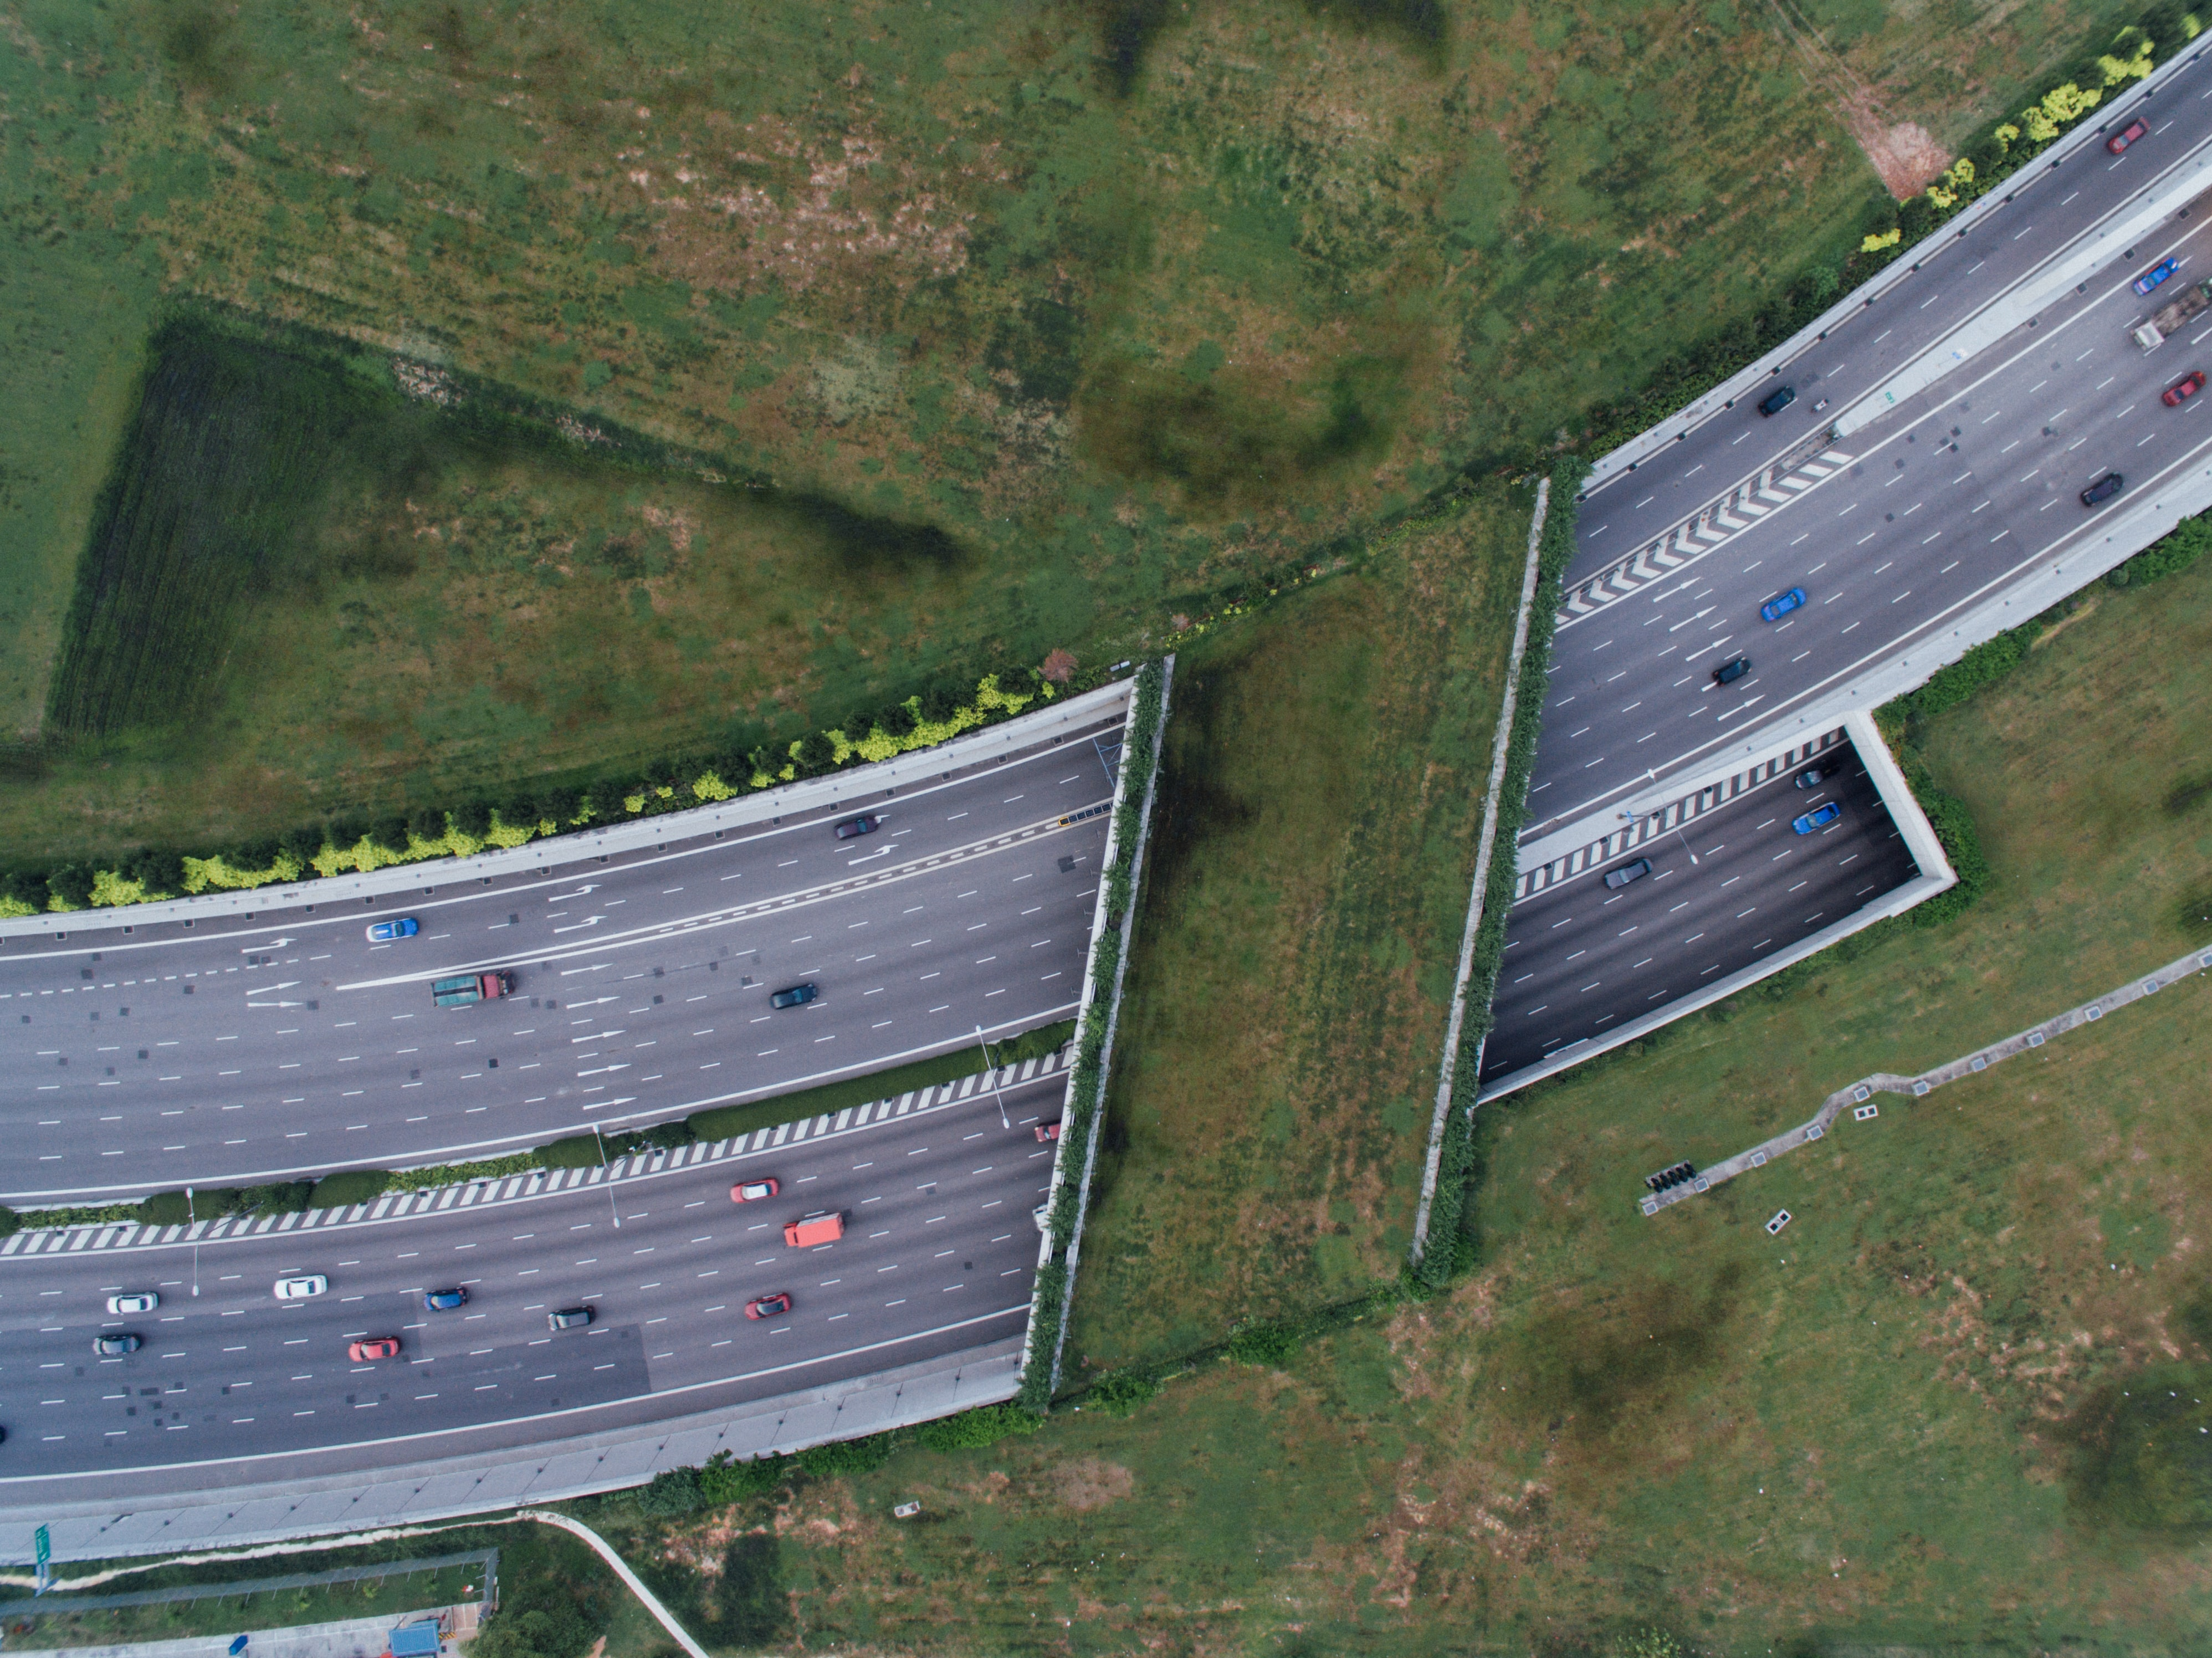 aerial view of cars on road during daytime